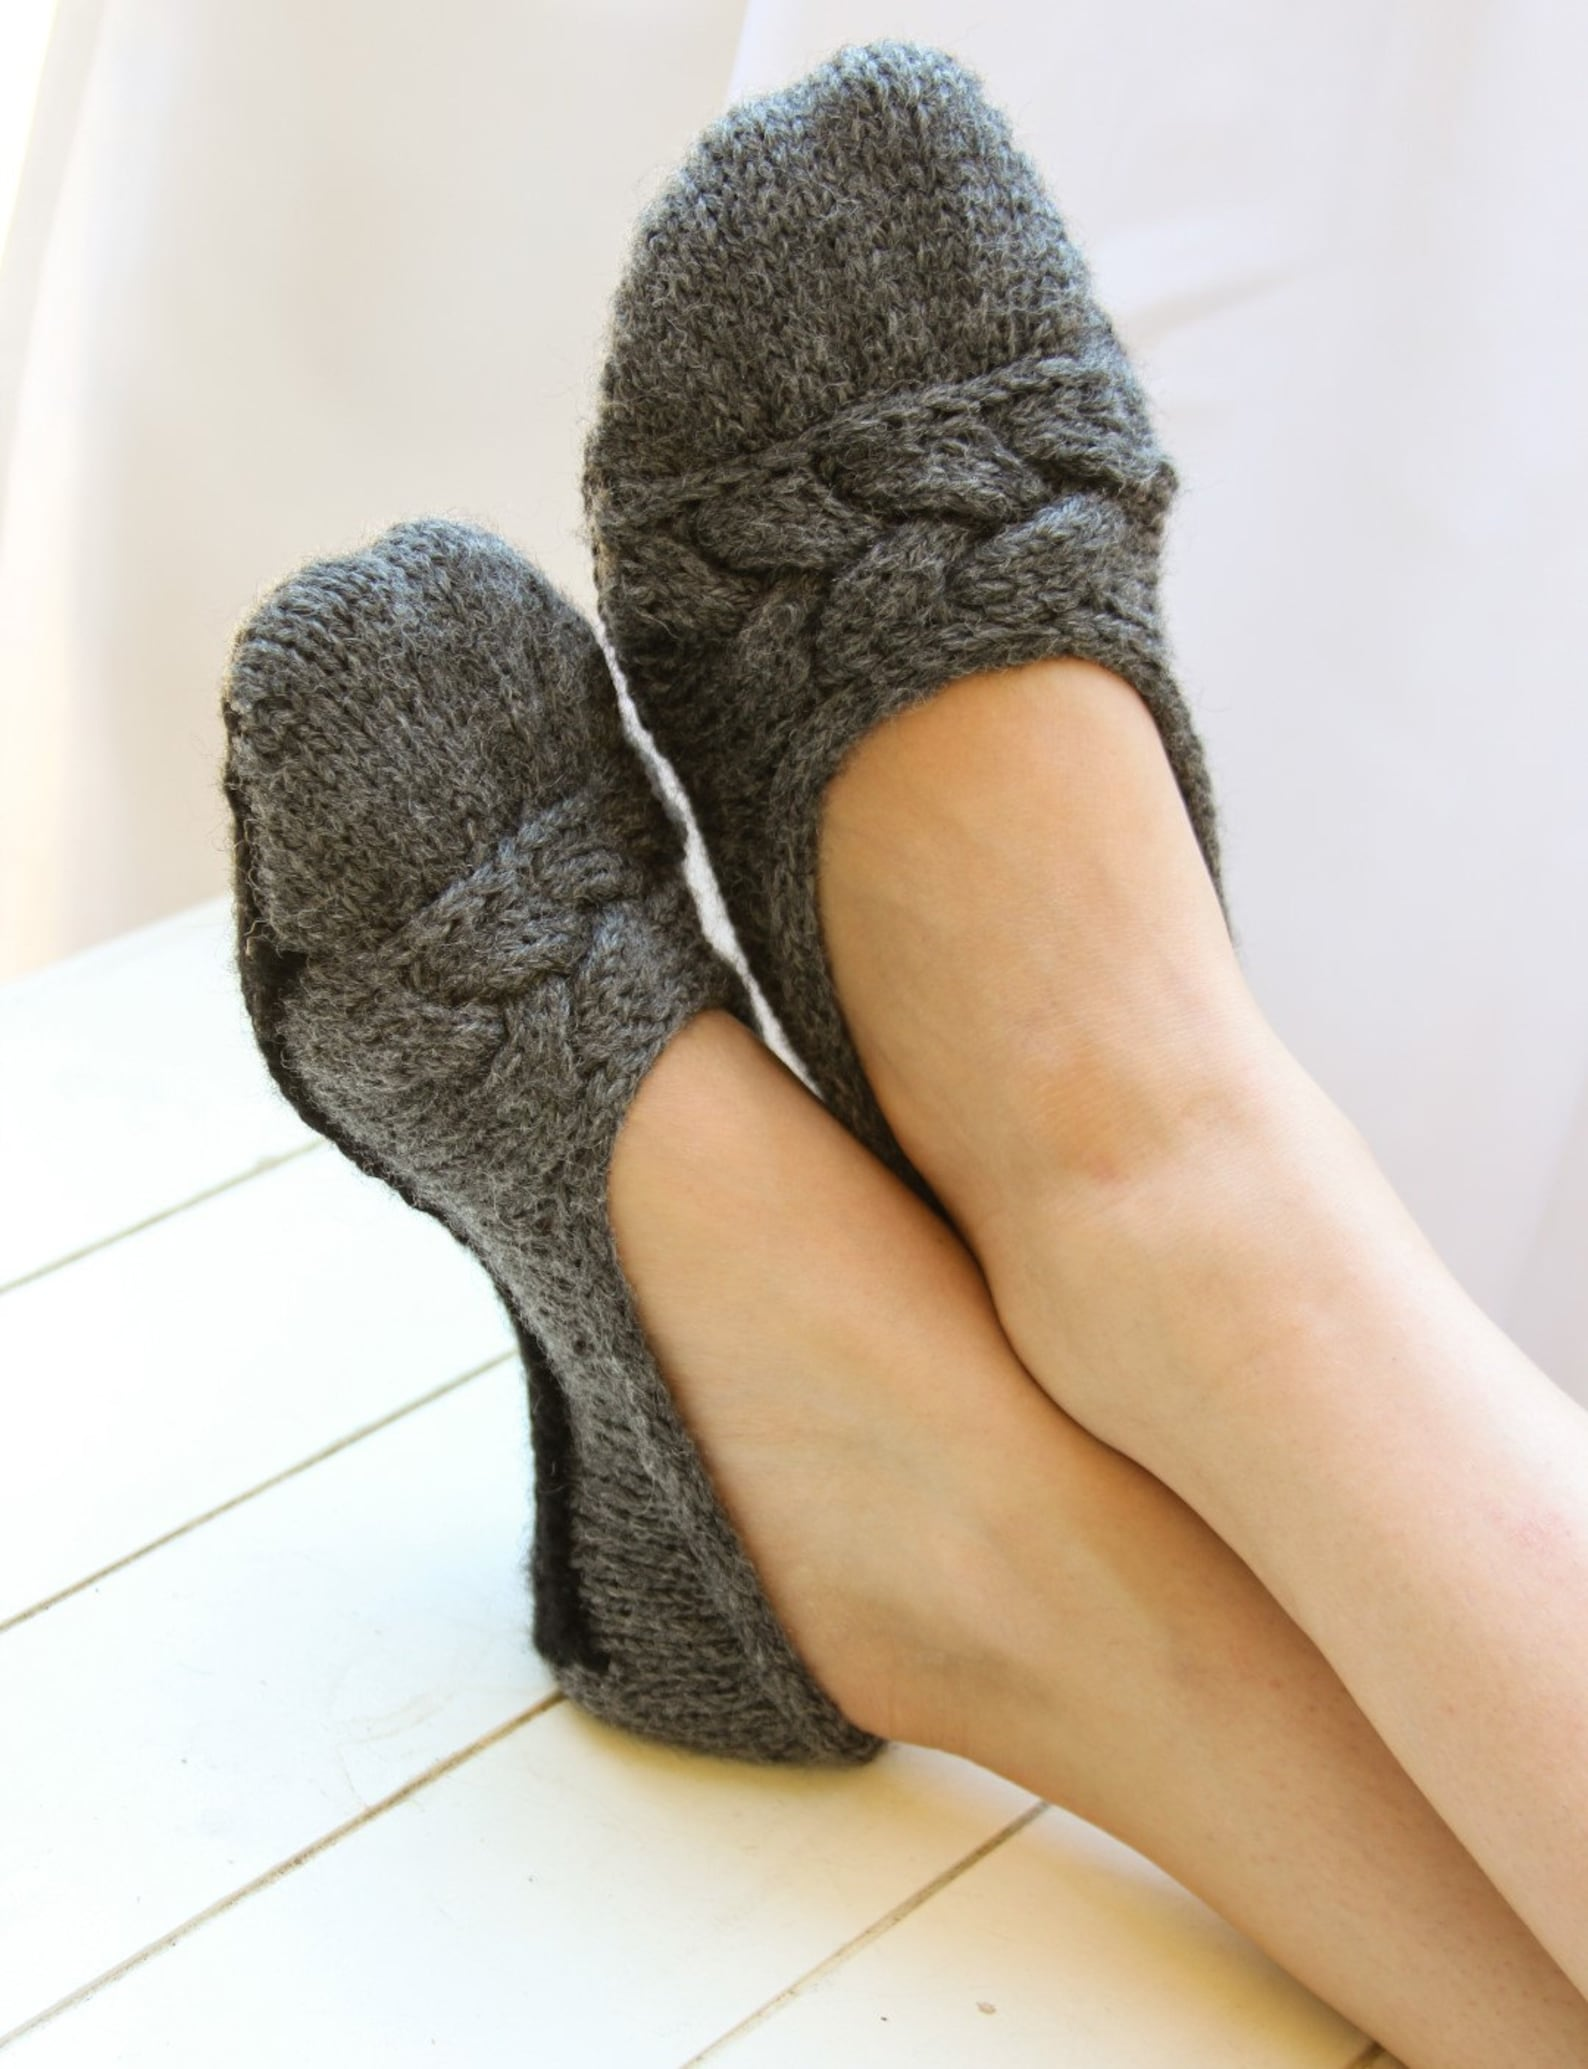 cloud nine ballet slippers pdf pattern - s (m, l, xl) - two tone, cable, cozy, sole, gift, christmas, holiday, knitting, knit